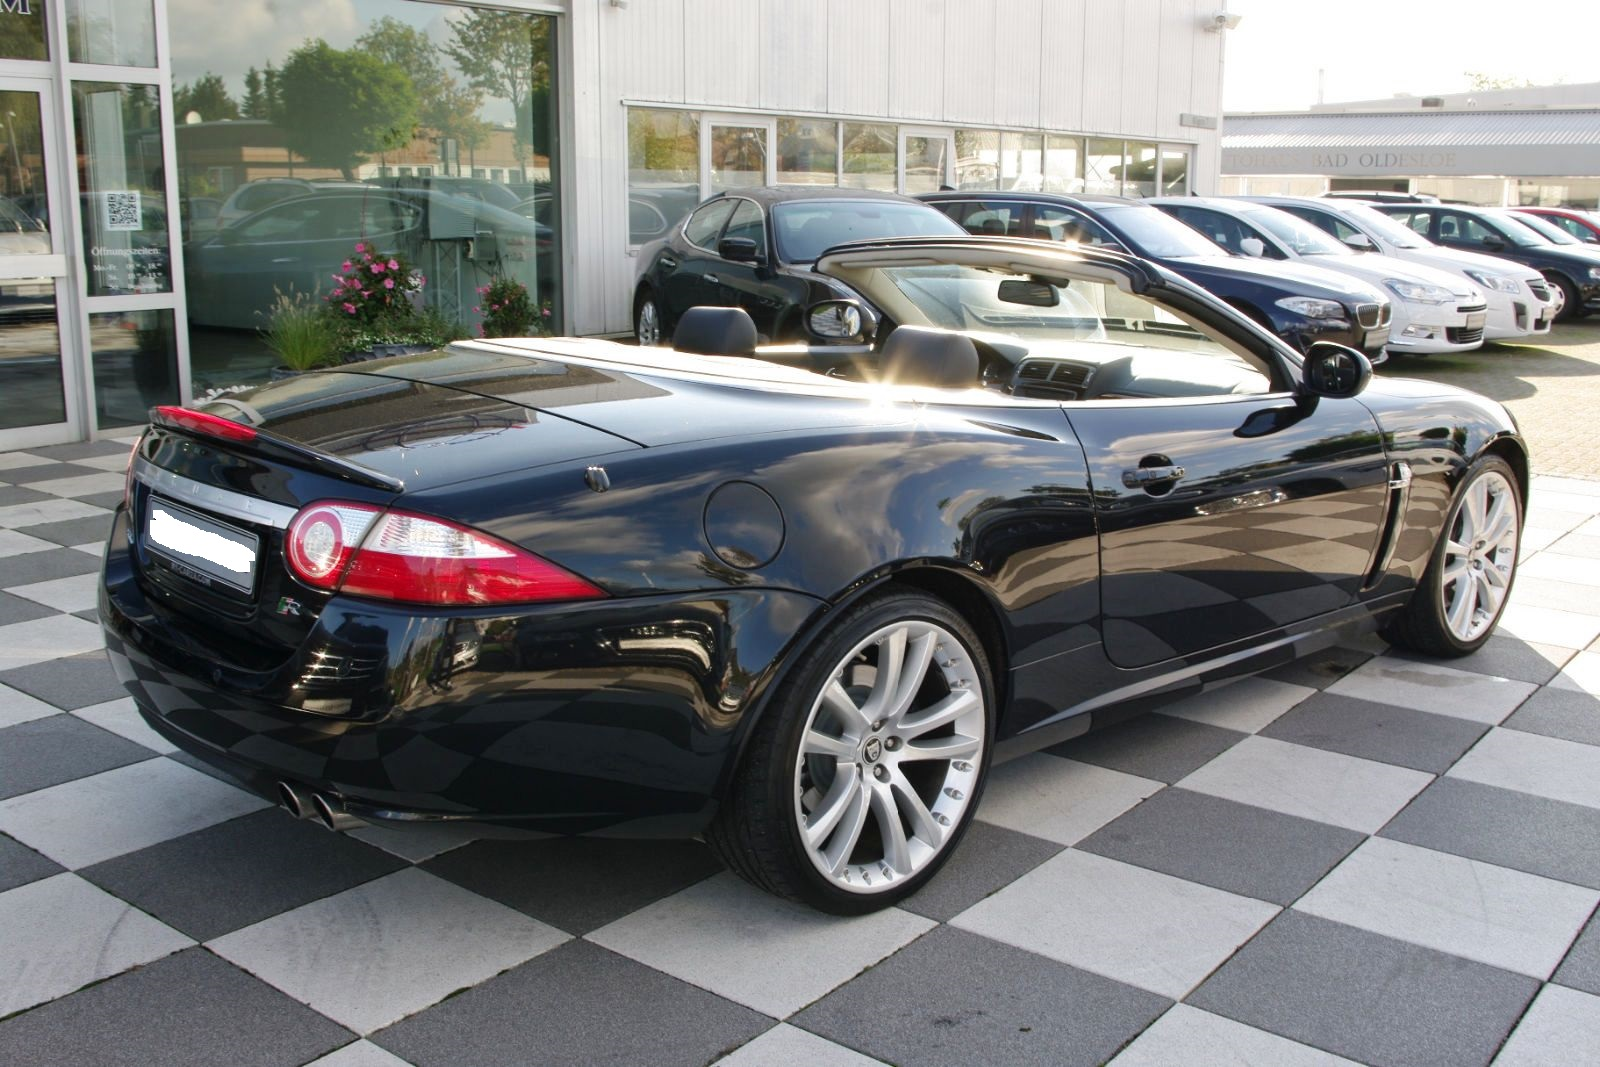 JAGUAR XKR (04/2007) - METALLIC BLACK - lieu: